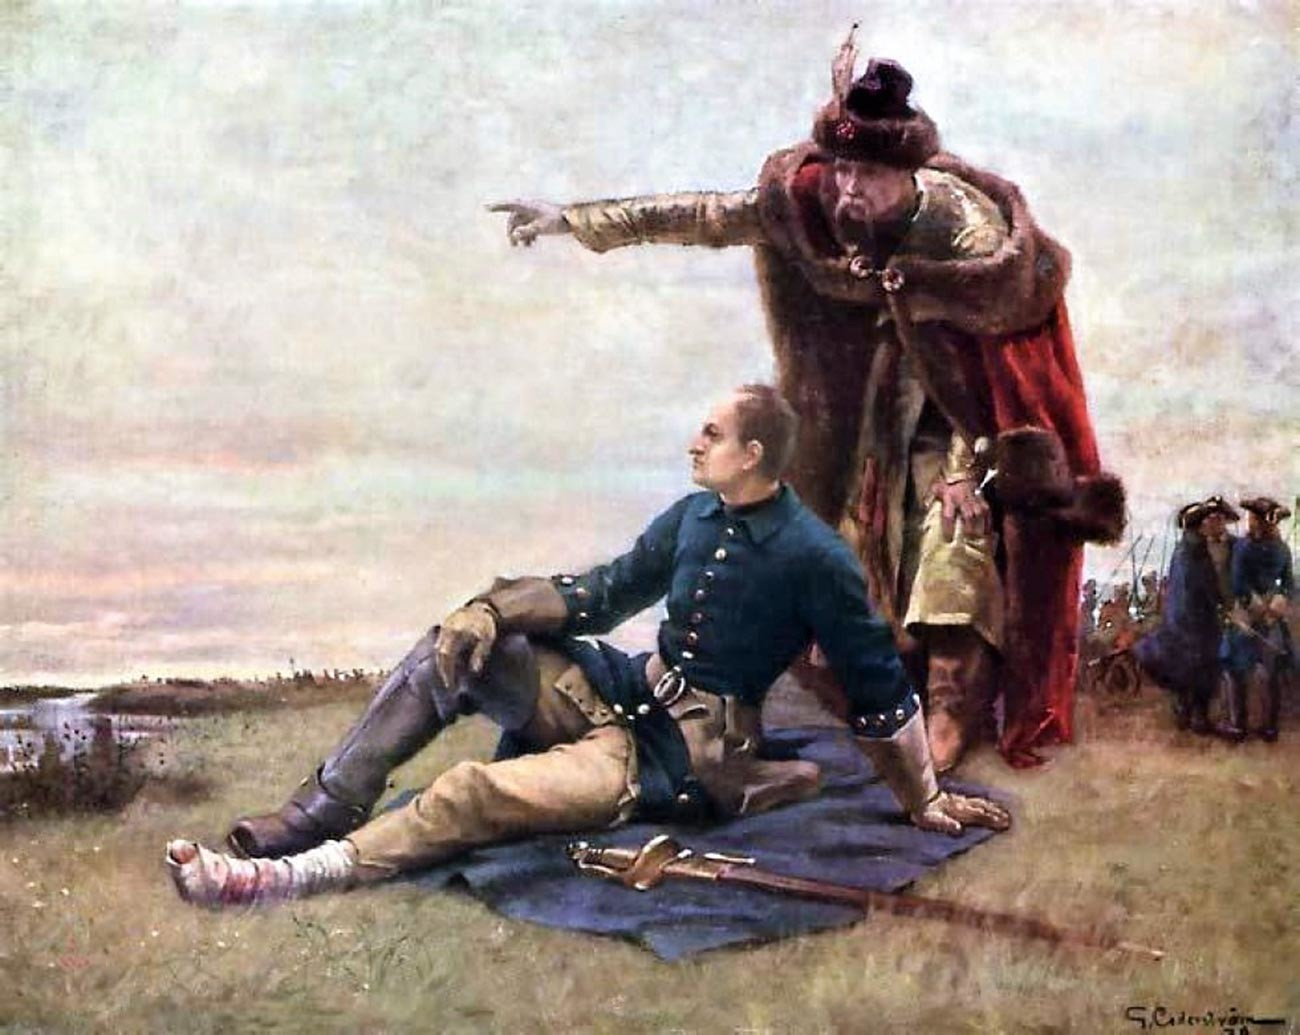 Charles XII of Sweden and Ivan Mazepa after the Battle of Poltava.